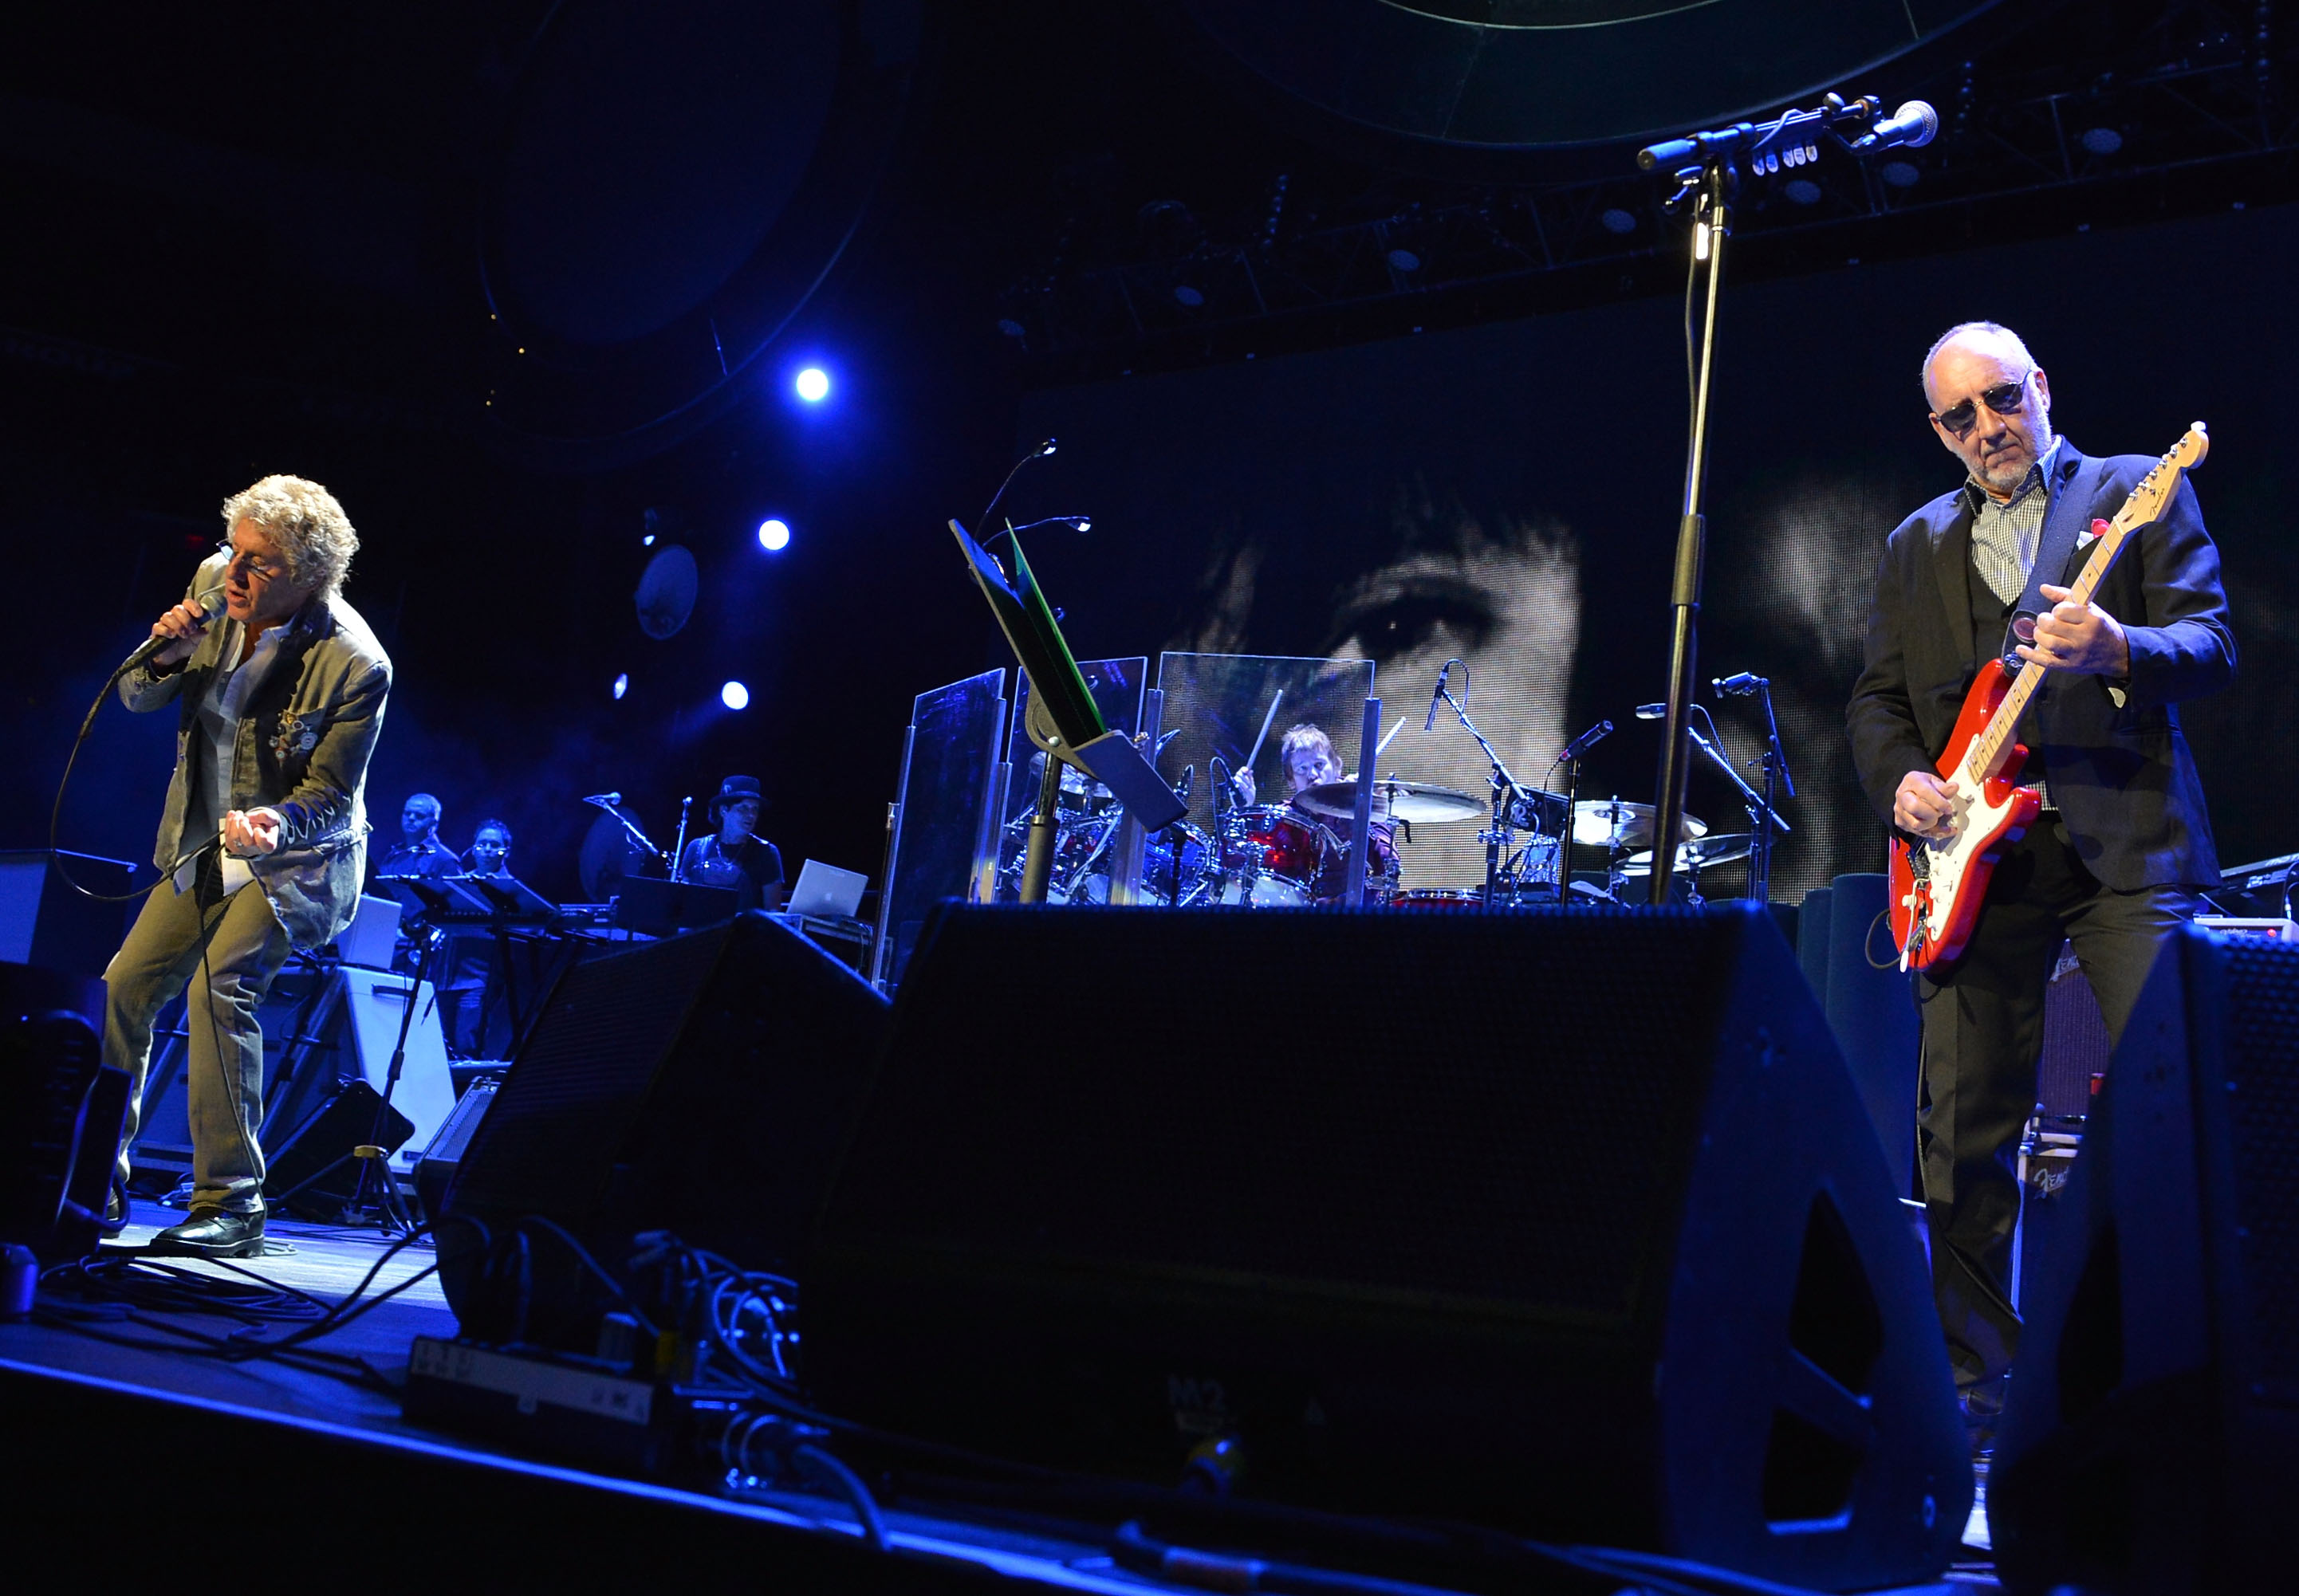 "SUNRISE, FL - NOVEMBER 01:  The Who's Rogar Daltrey and Pete Townshend perform during The Who ""Quadrophenia And More"" World Tour Opening Night at BB&T Center on November 1, 2012 in Sunrise, Florida.  (Photo by Rick Diamond/Getty Images for The Who) *** Local Caption *** Rogar Daltrey; Pete Townshend"